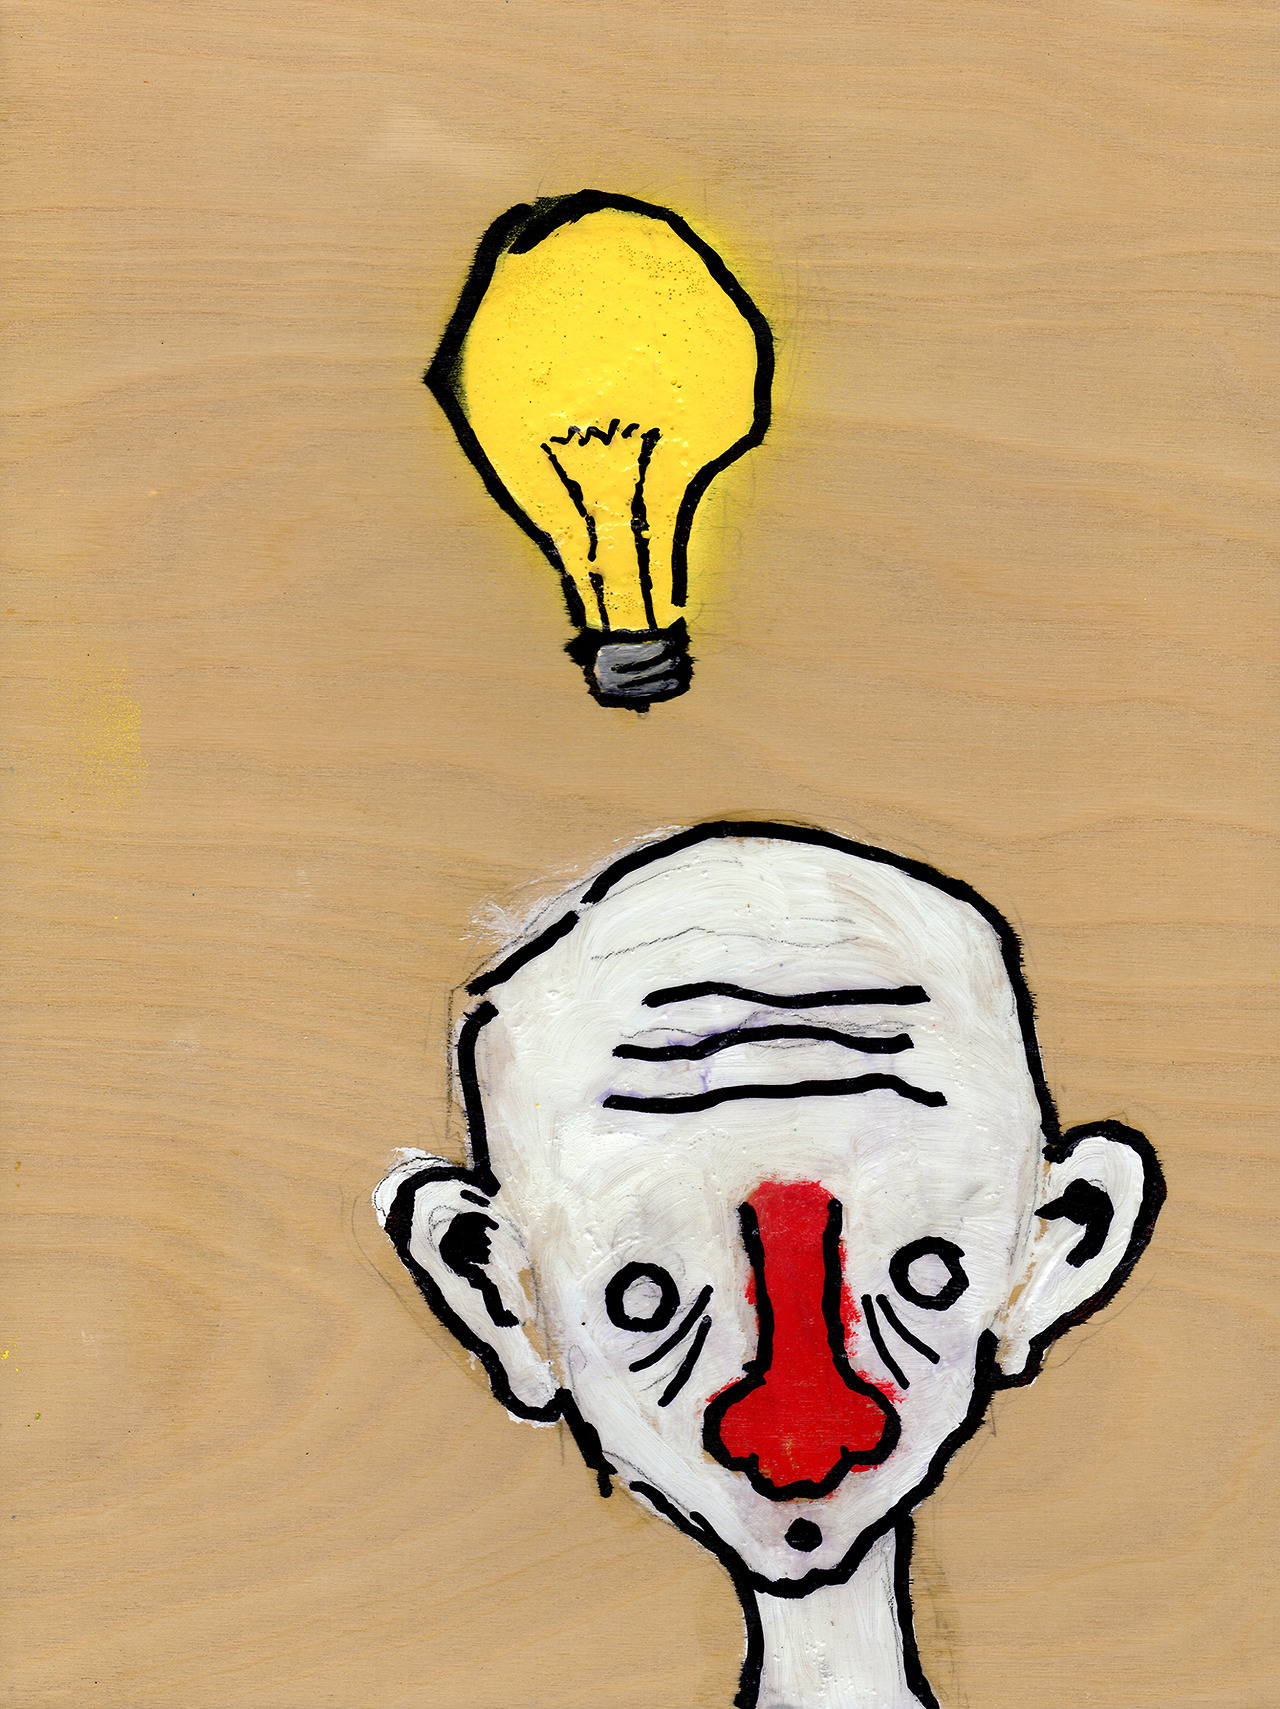 "6/11/13 - The Danger Bulb. Ideas can hurt. 9"" x 12"" Acrylic paint, sharpie, pencil, polyurethane on birch panel. Available to purchase here: http://taylorwinder.bigcartel.com Prints available here: http://society6.com/taylorwinder"